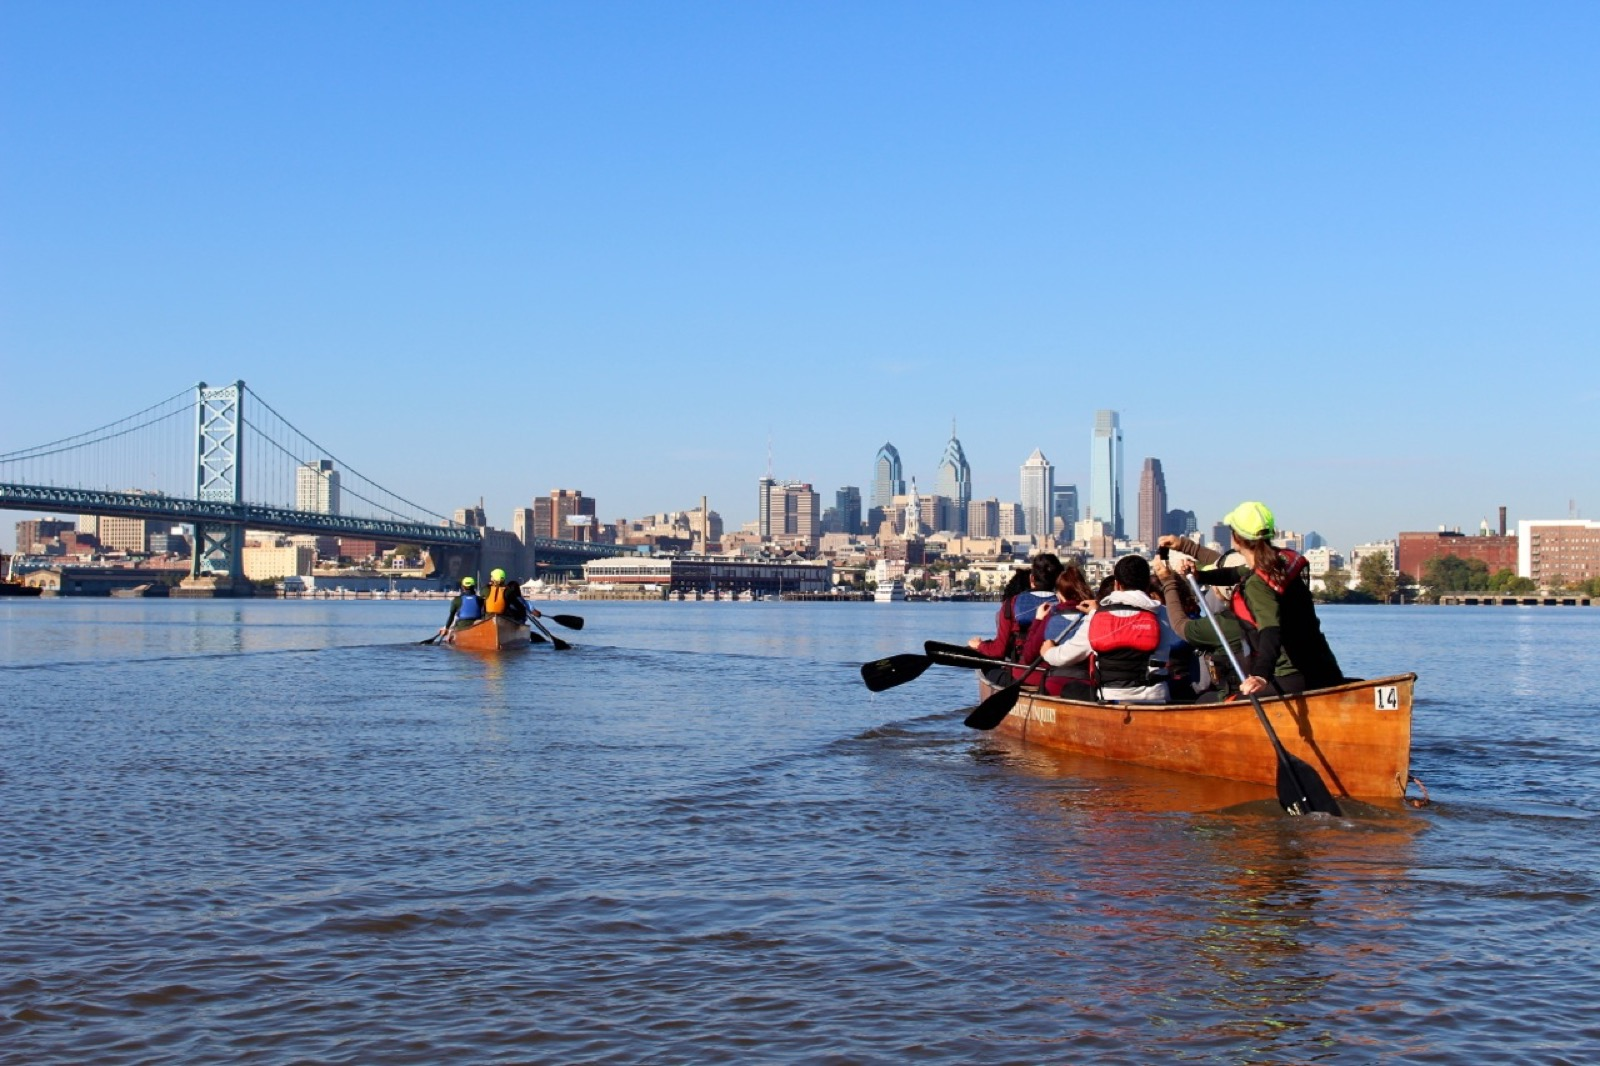 two groups paddle their canoes on the Delaware River with the skyline in the background